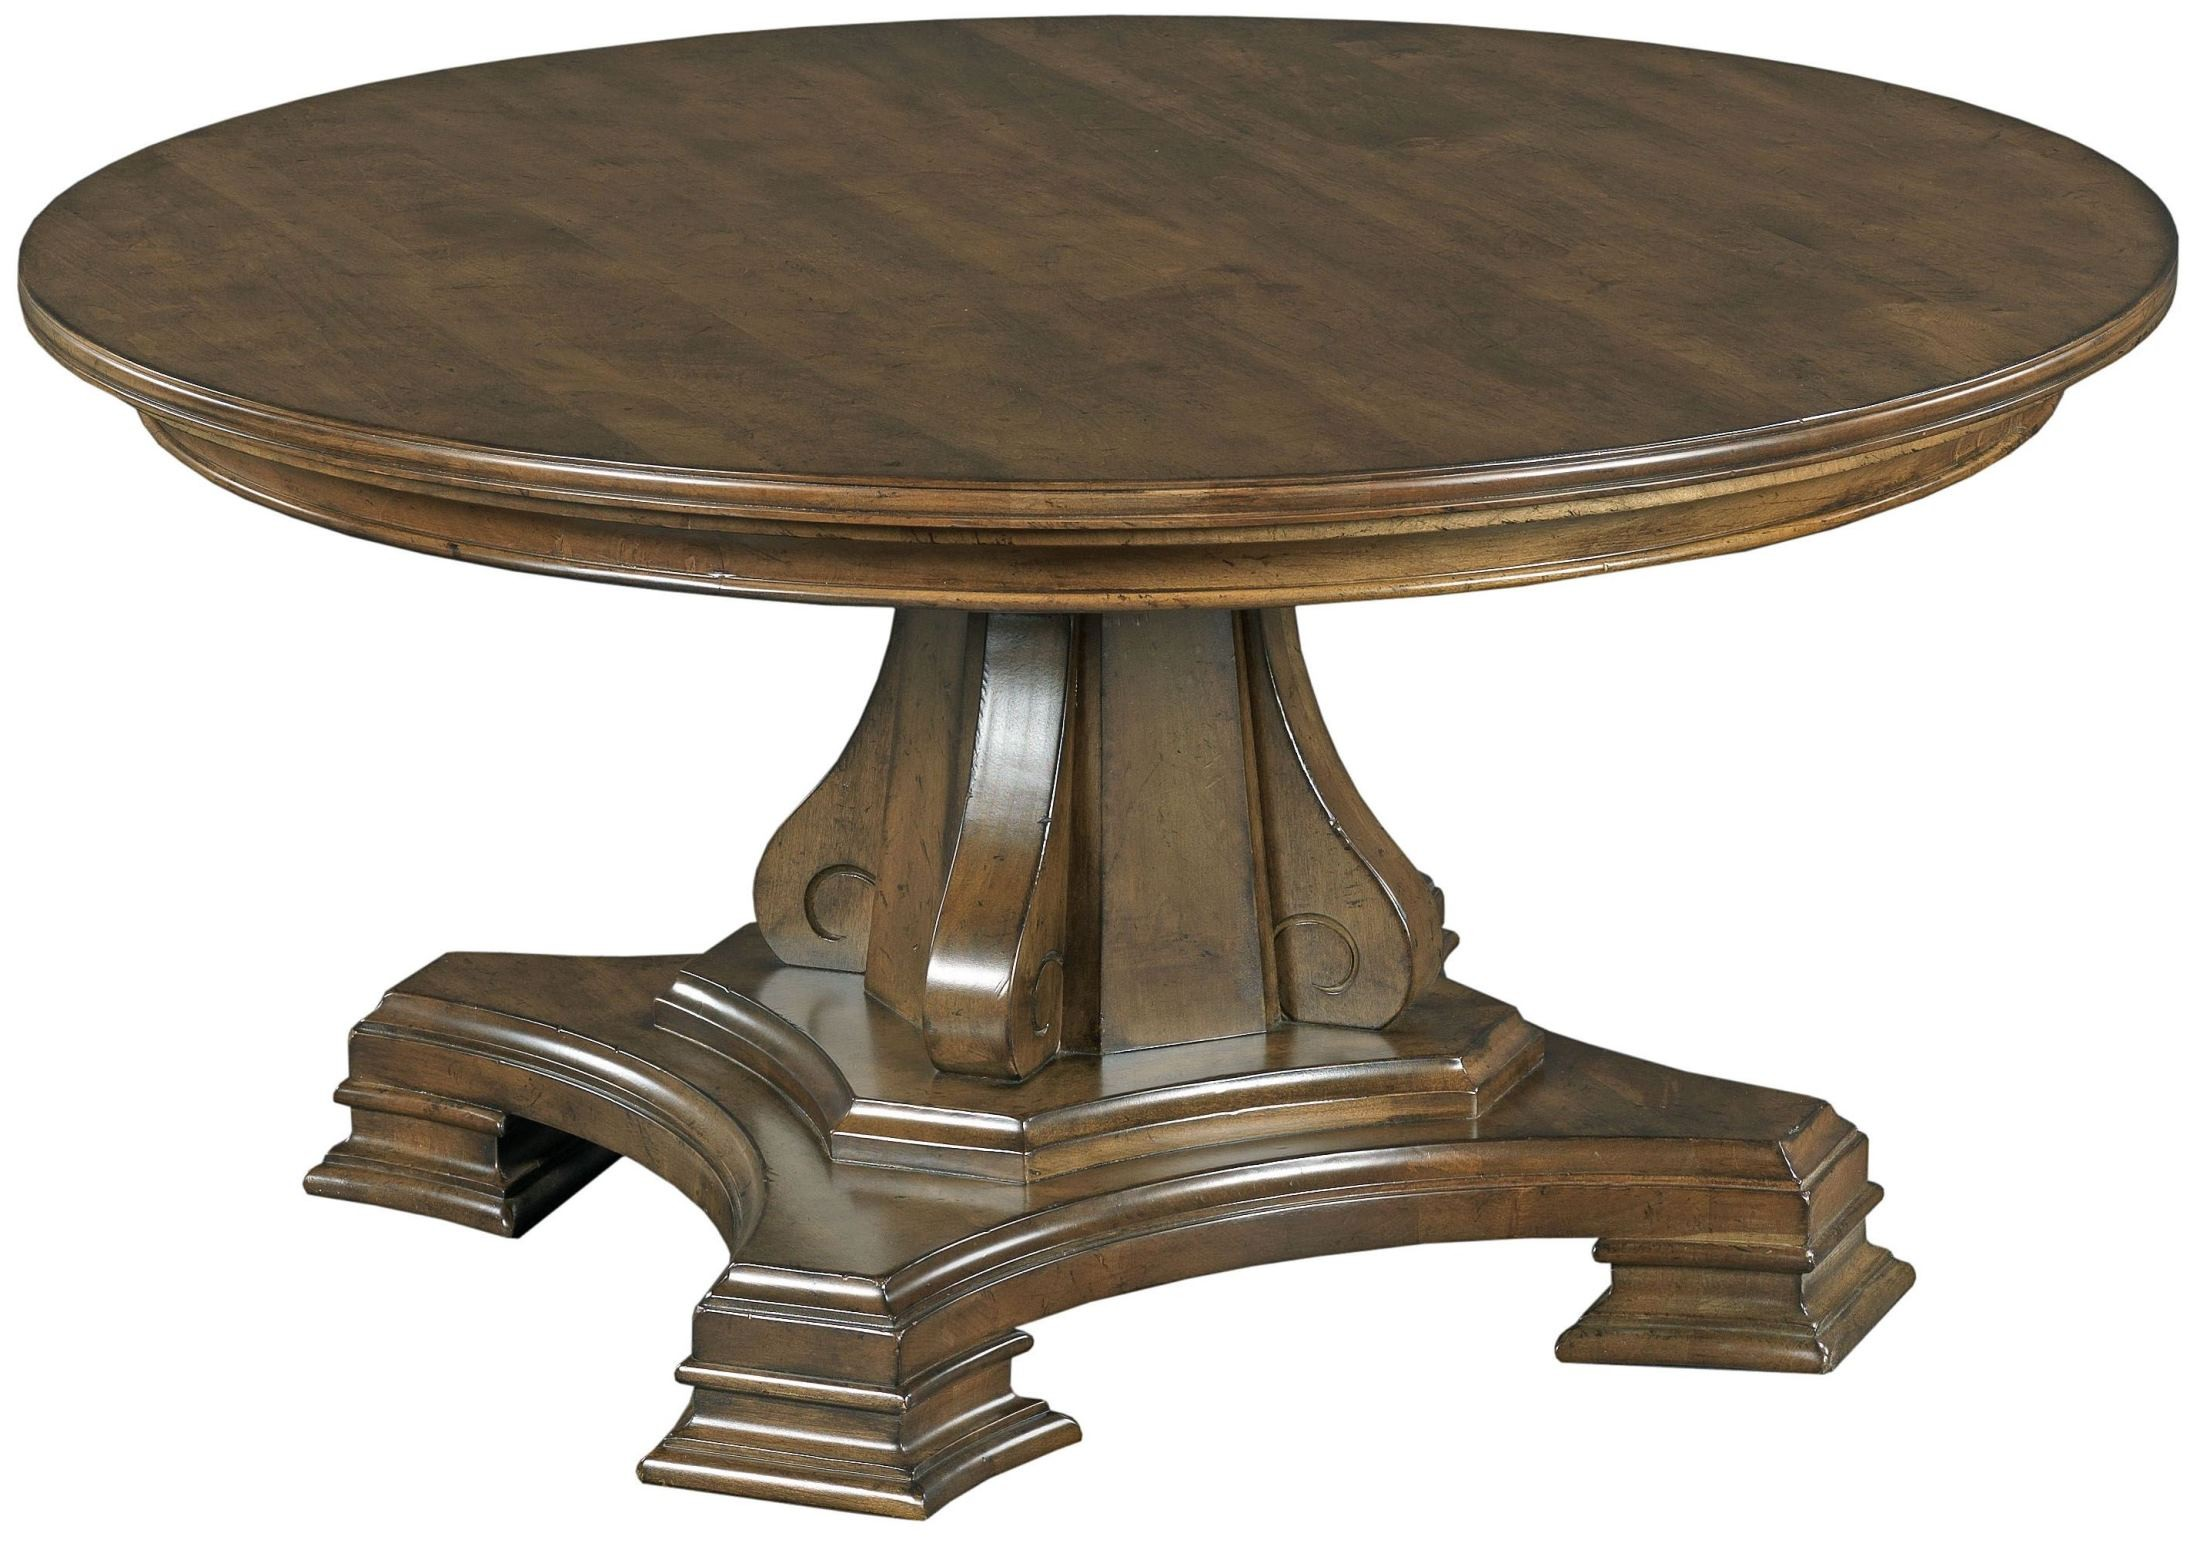 Portolone Round Cocktail Table From Kincaid 95 027t 027b